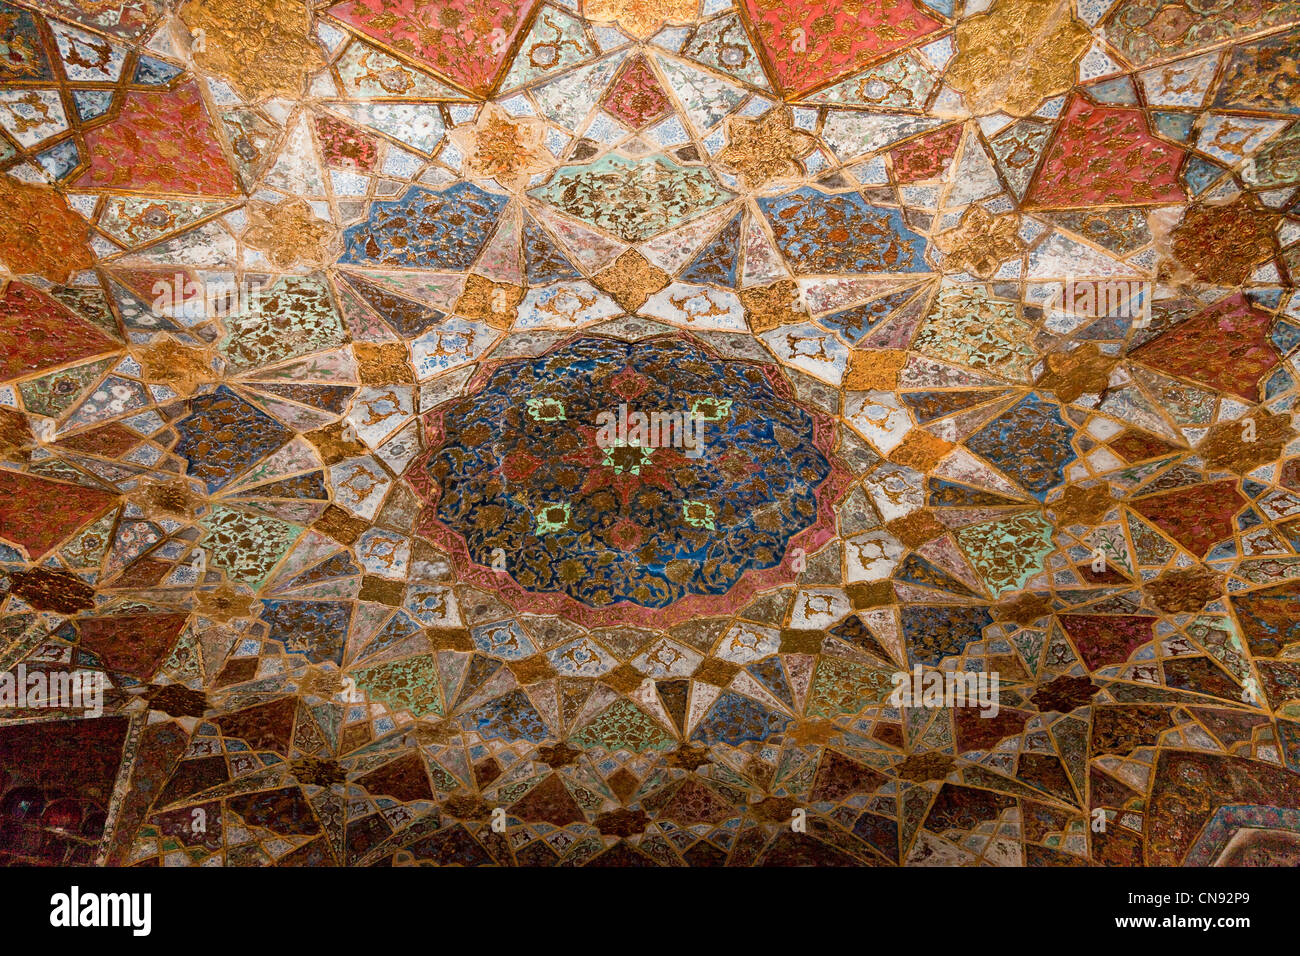 Agra, India. Ceiling Design, Interior of the Itimad-ud-Dawlah, Mausoleum of Mirza Ghiyas Beg. Stock Photo